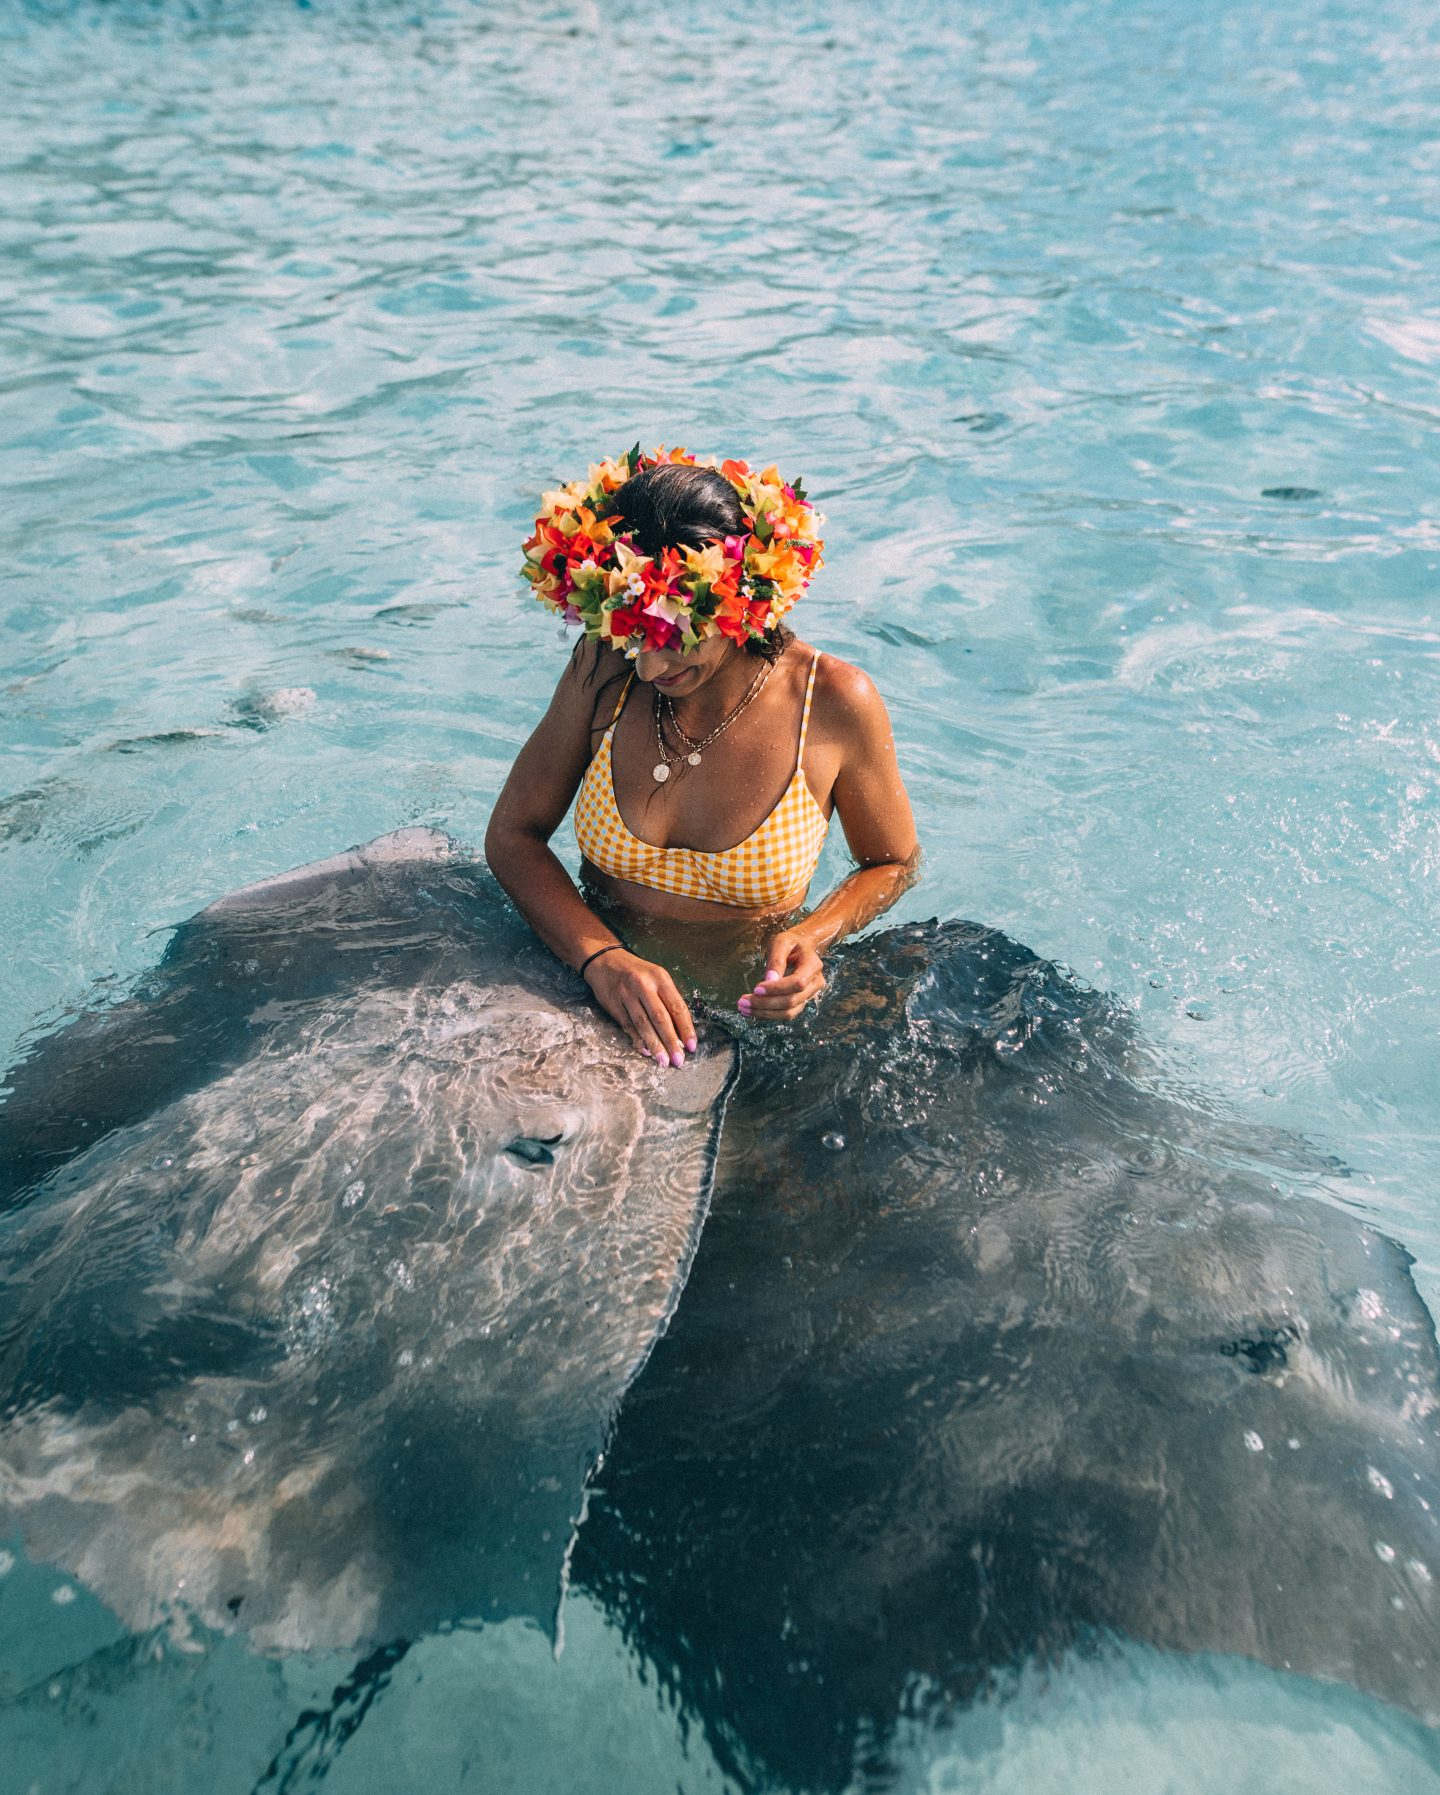 Swimming with the sting rays in Tahiti